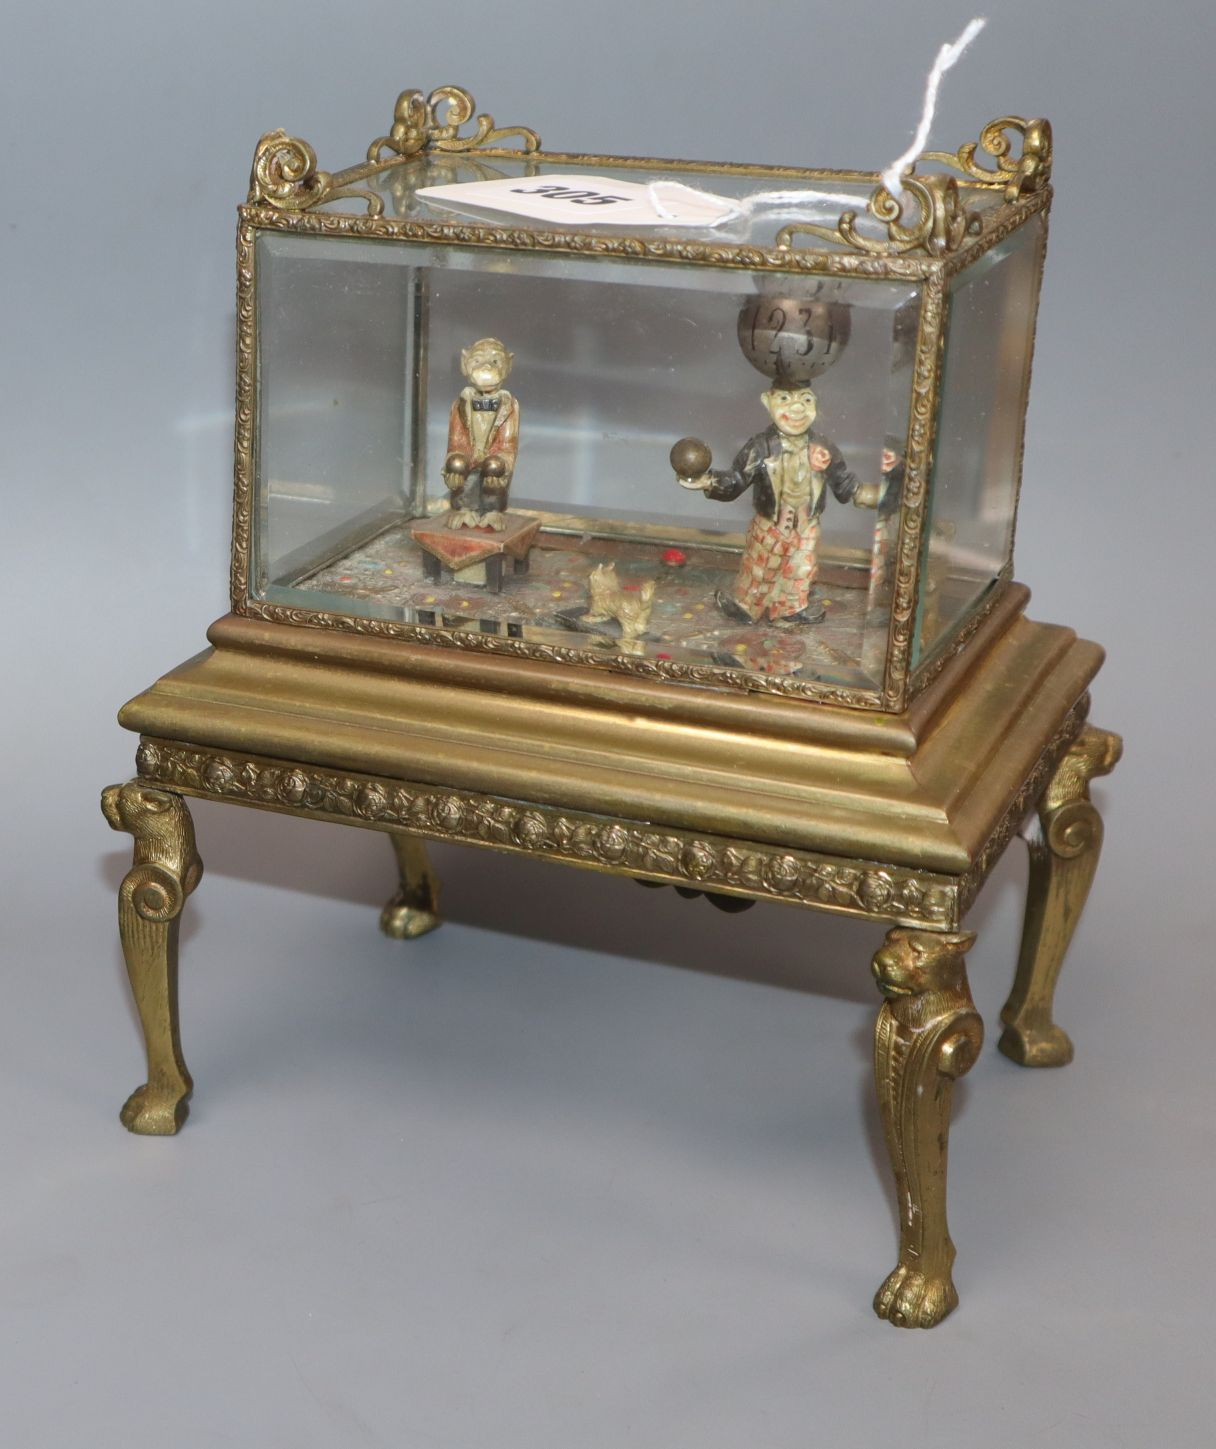 Lot 305 - An Austrian ormolu cased automaton figural timepiece with musical movement, early 20th century